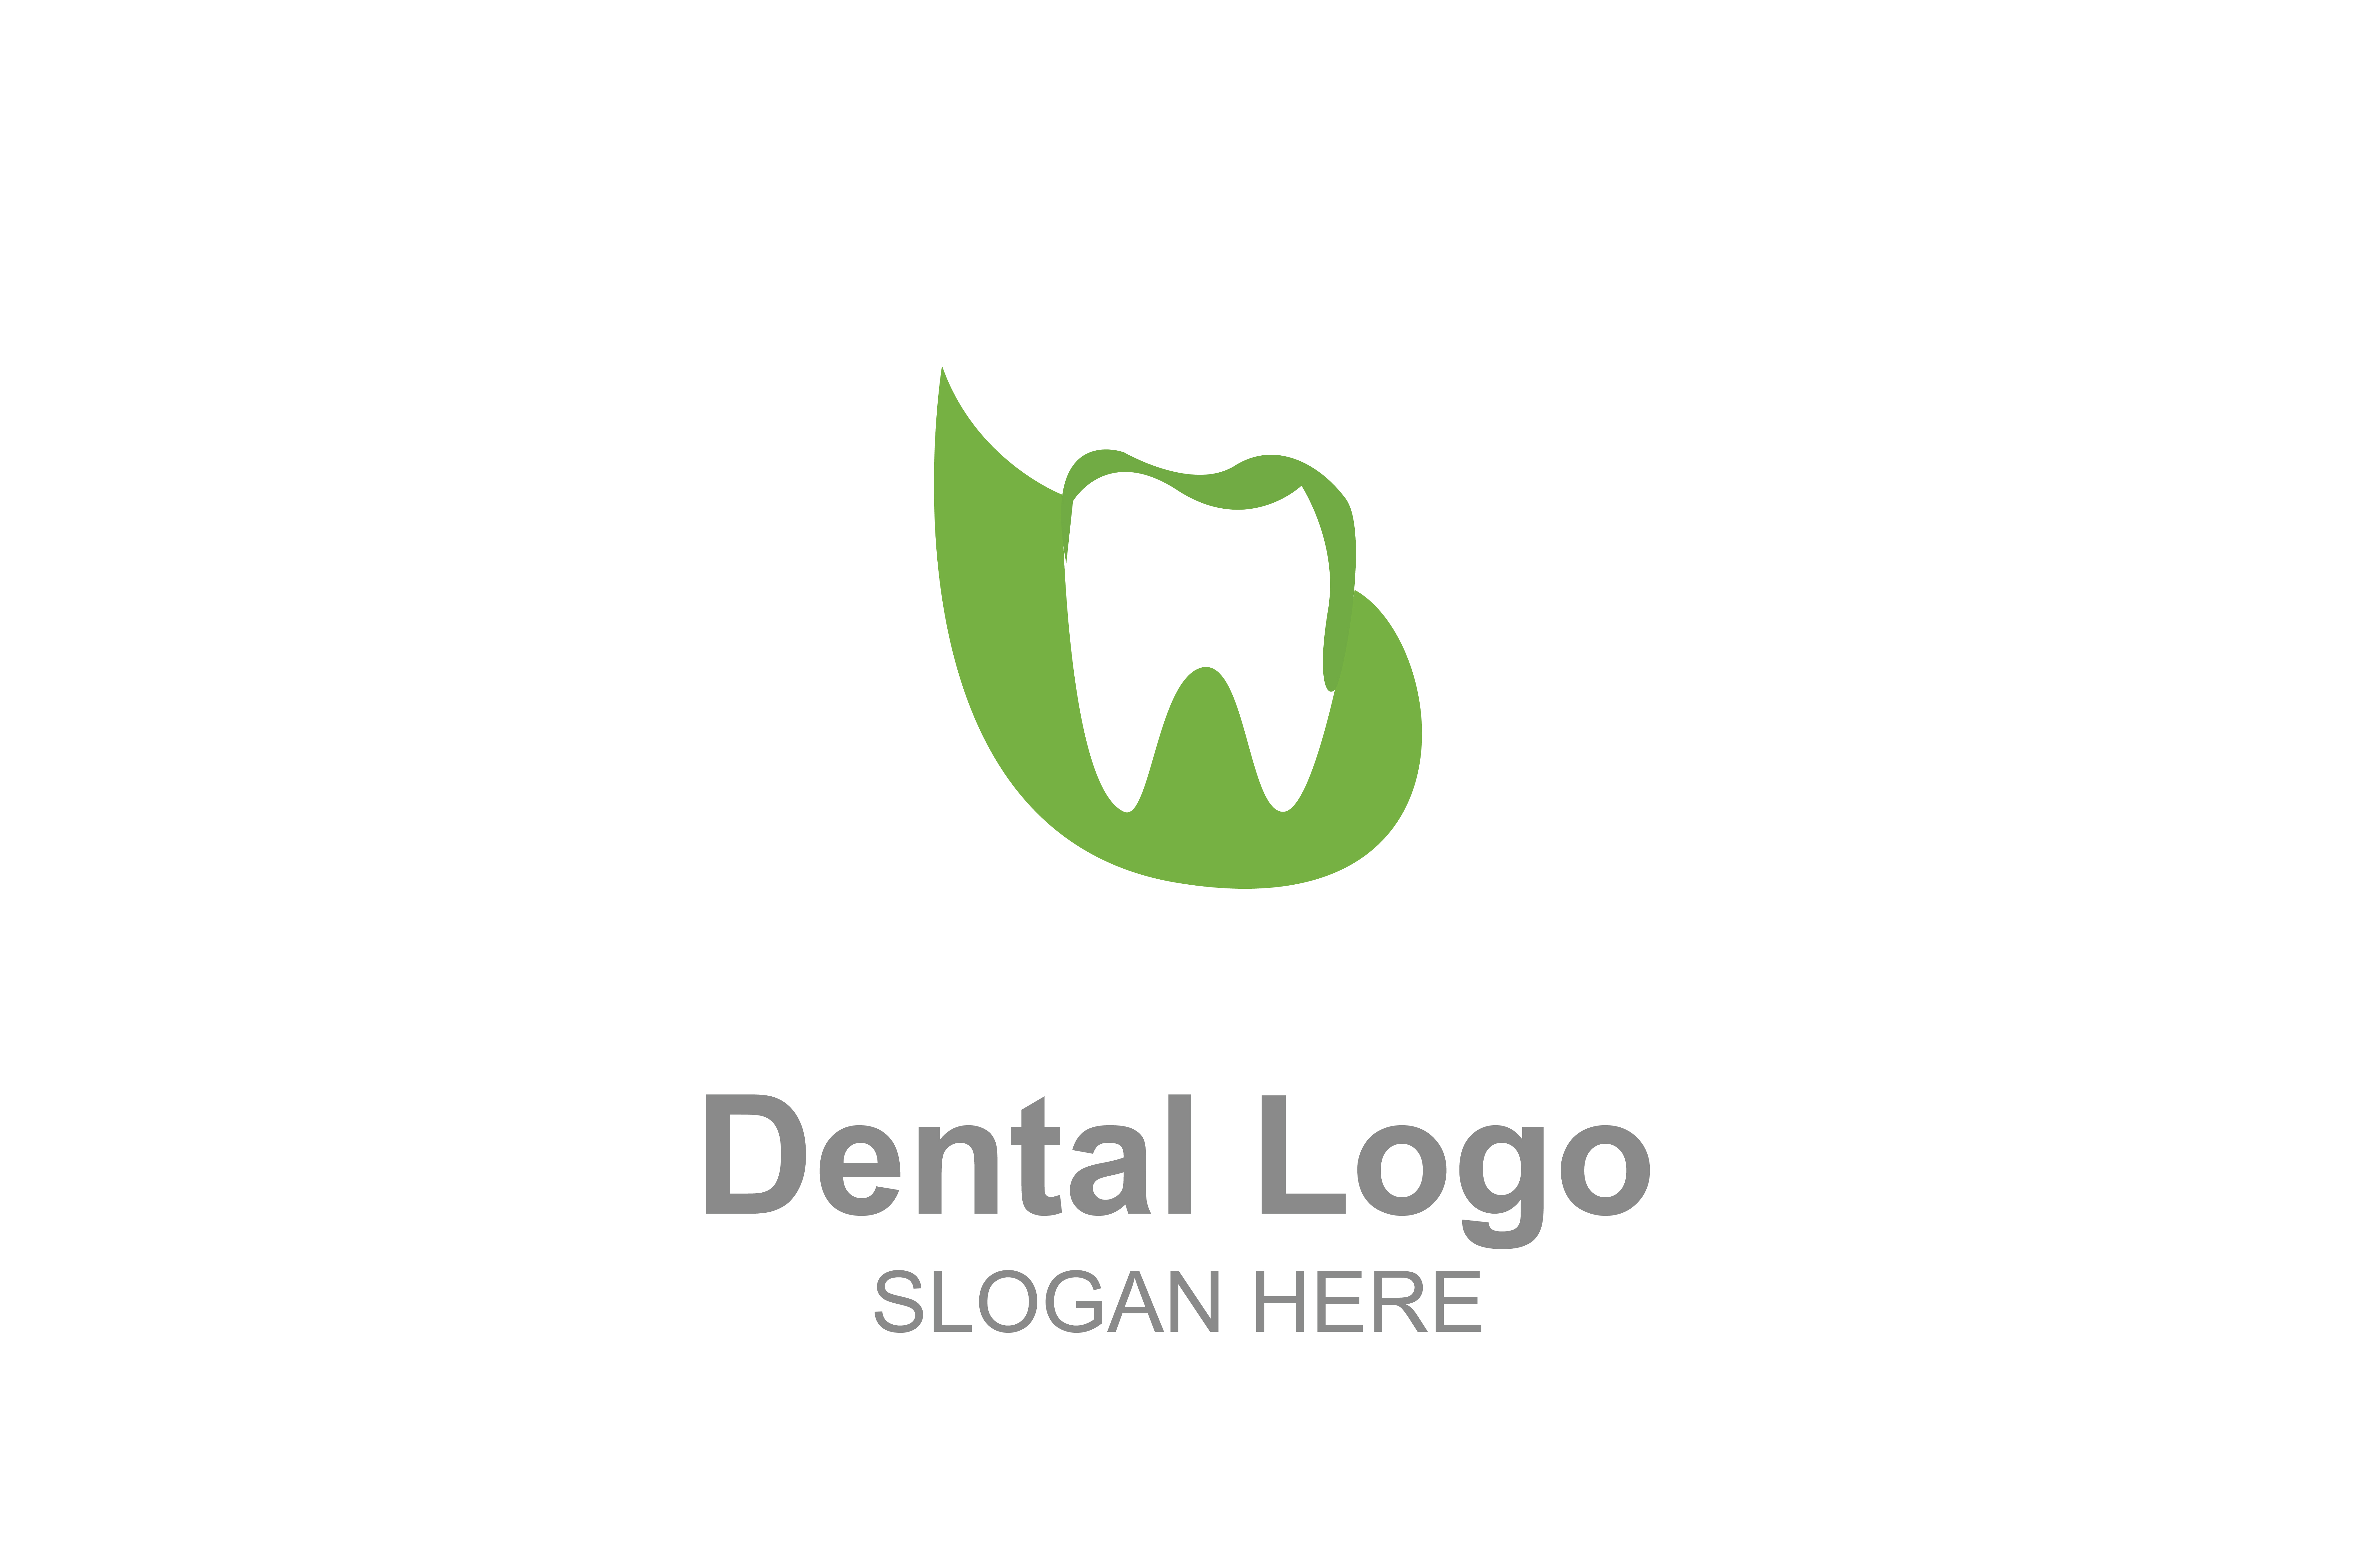 Download Free Dental Logo Graphic By Guardesign Creative Fabrica for Cricut Explore, Silhouette and other cutting machines.